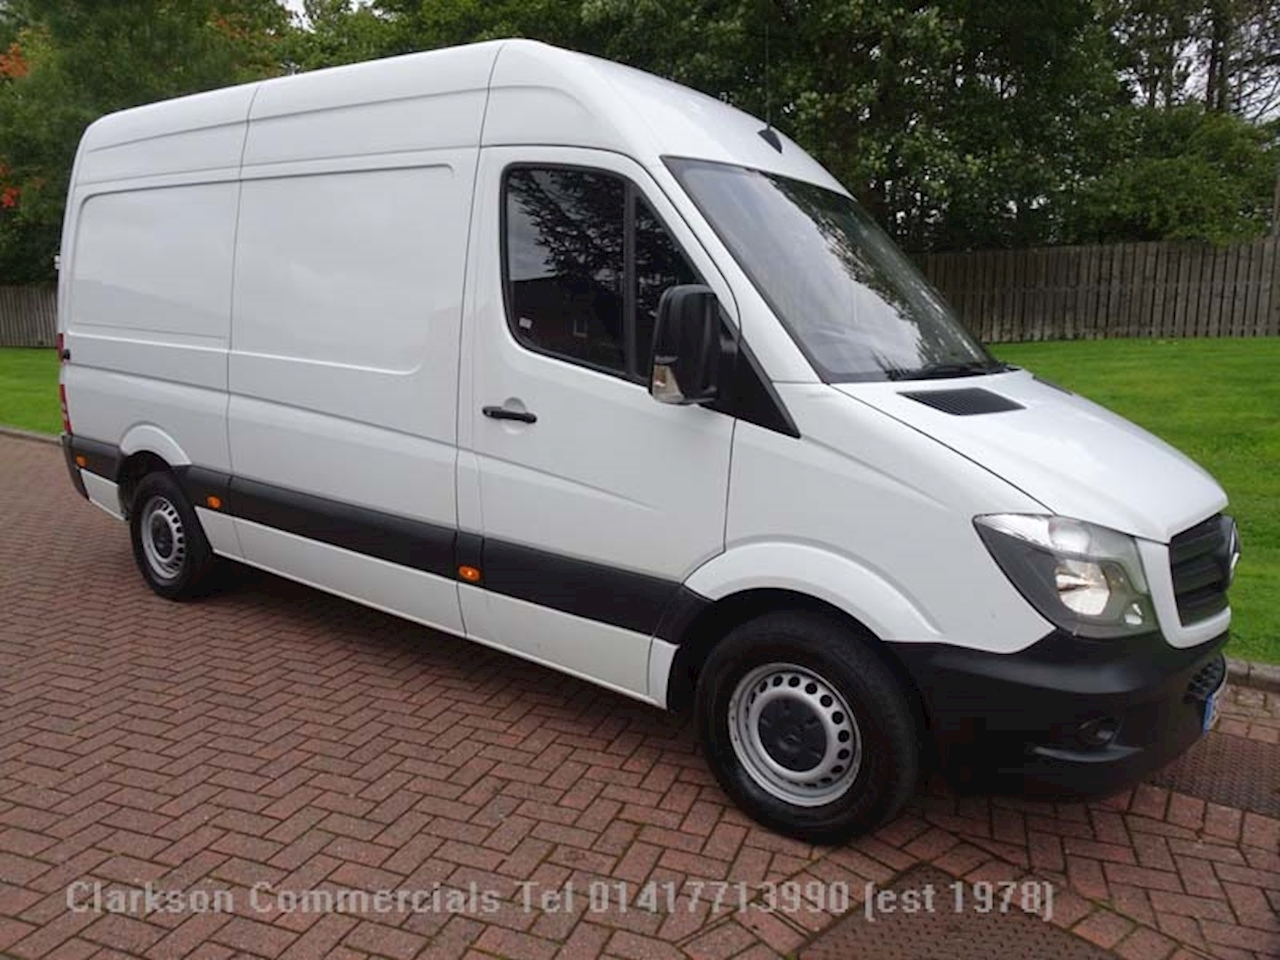 Mercedes-Benz Sprinter 314 Cdi Medium wheelbase 2.1 5dr Panel Van Manual Diesel